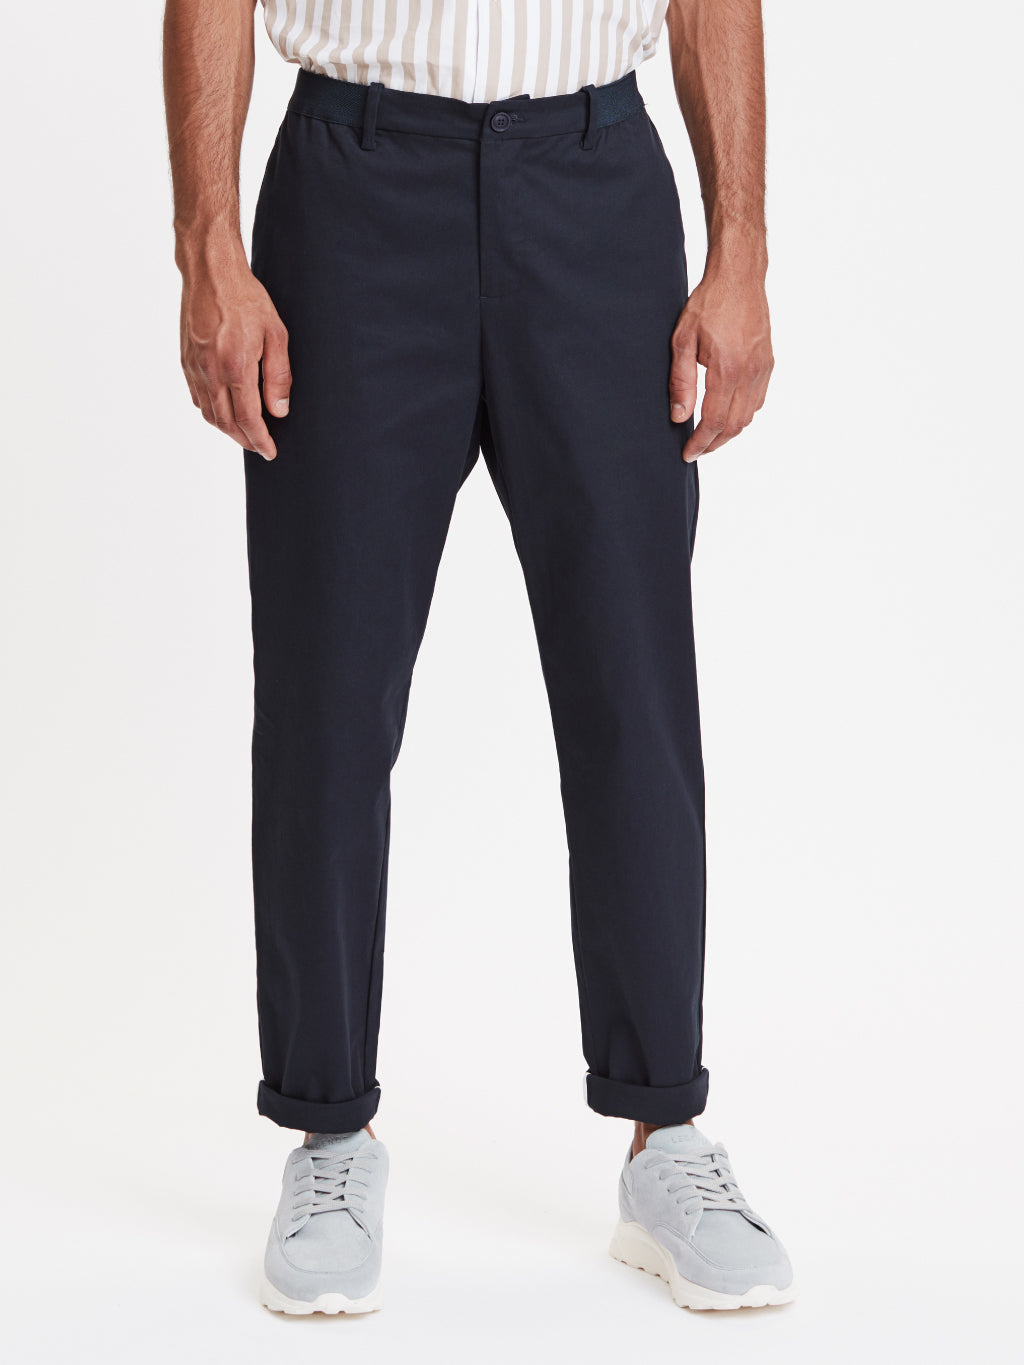 Century Trousers | Navy